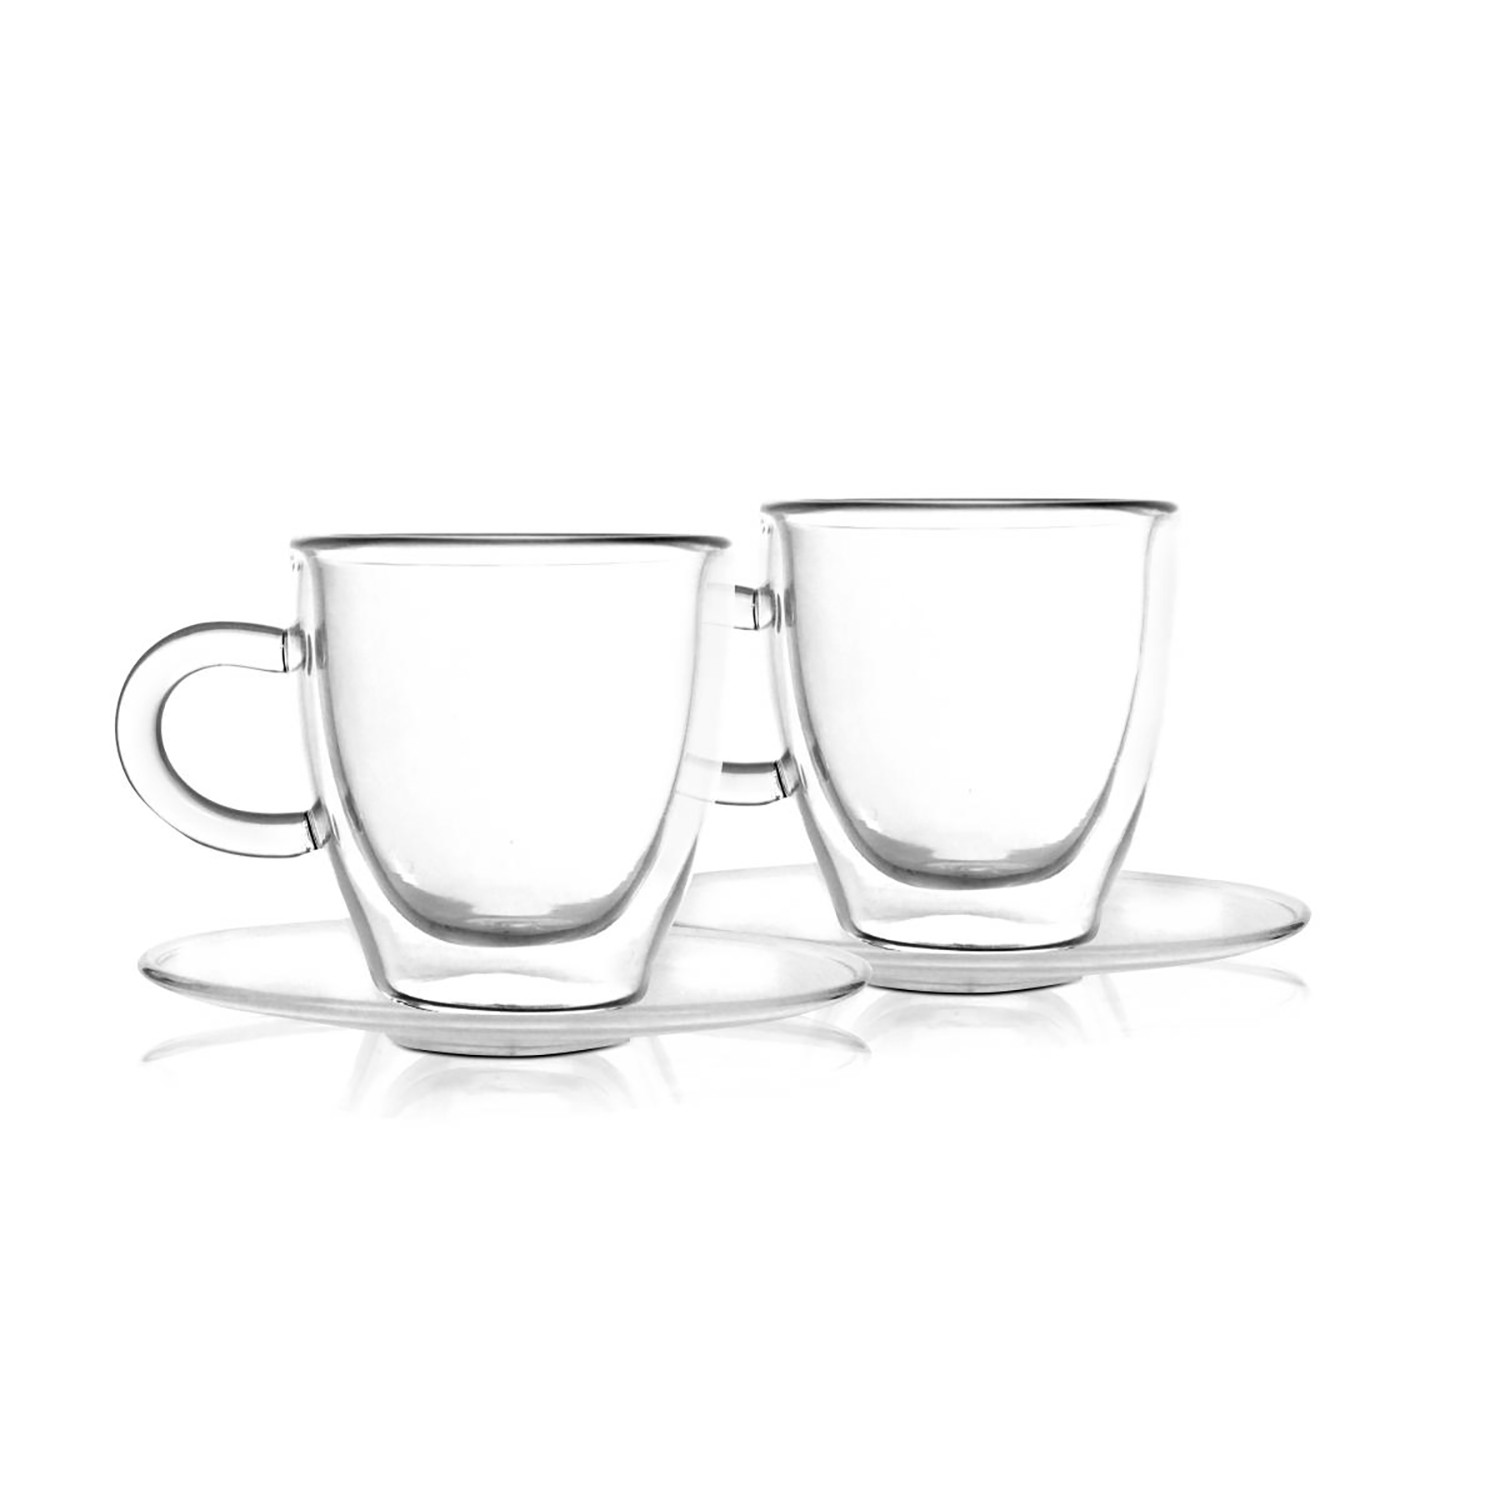 amo espresso cup saucer set of 4 vialli touch of modern. Black Bedroom Furniture Sets. Home Design Ideas